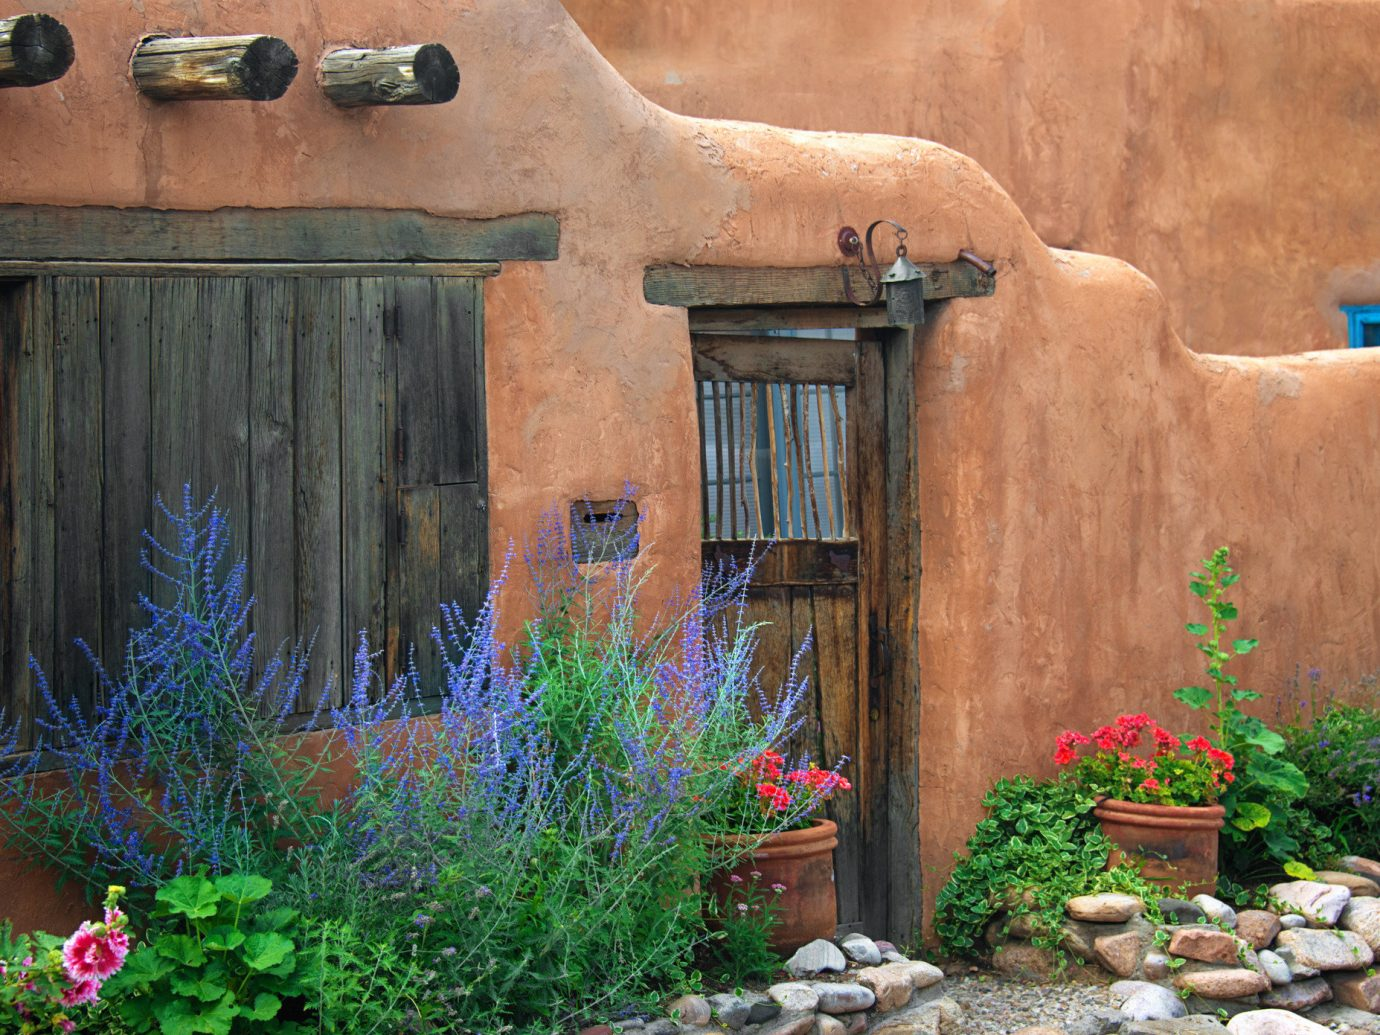 Offbeat building outdoor flower plant wall house yard backyard Garden home pot window stone surrounded